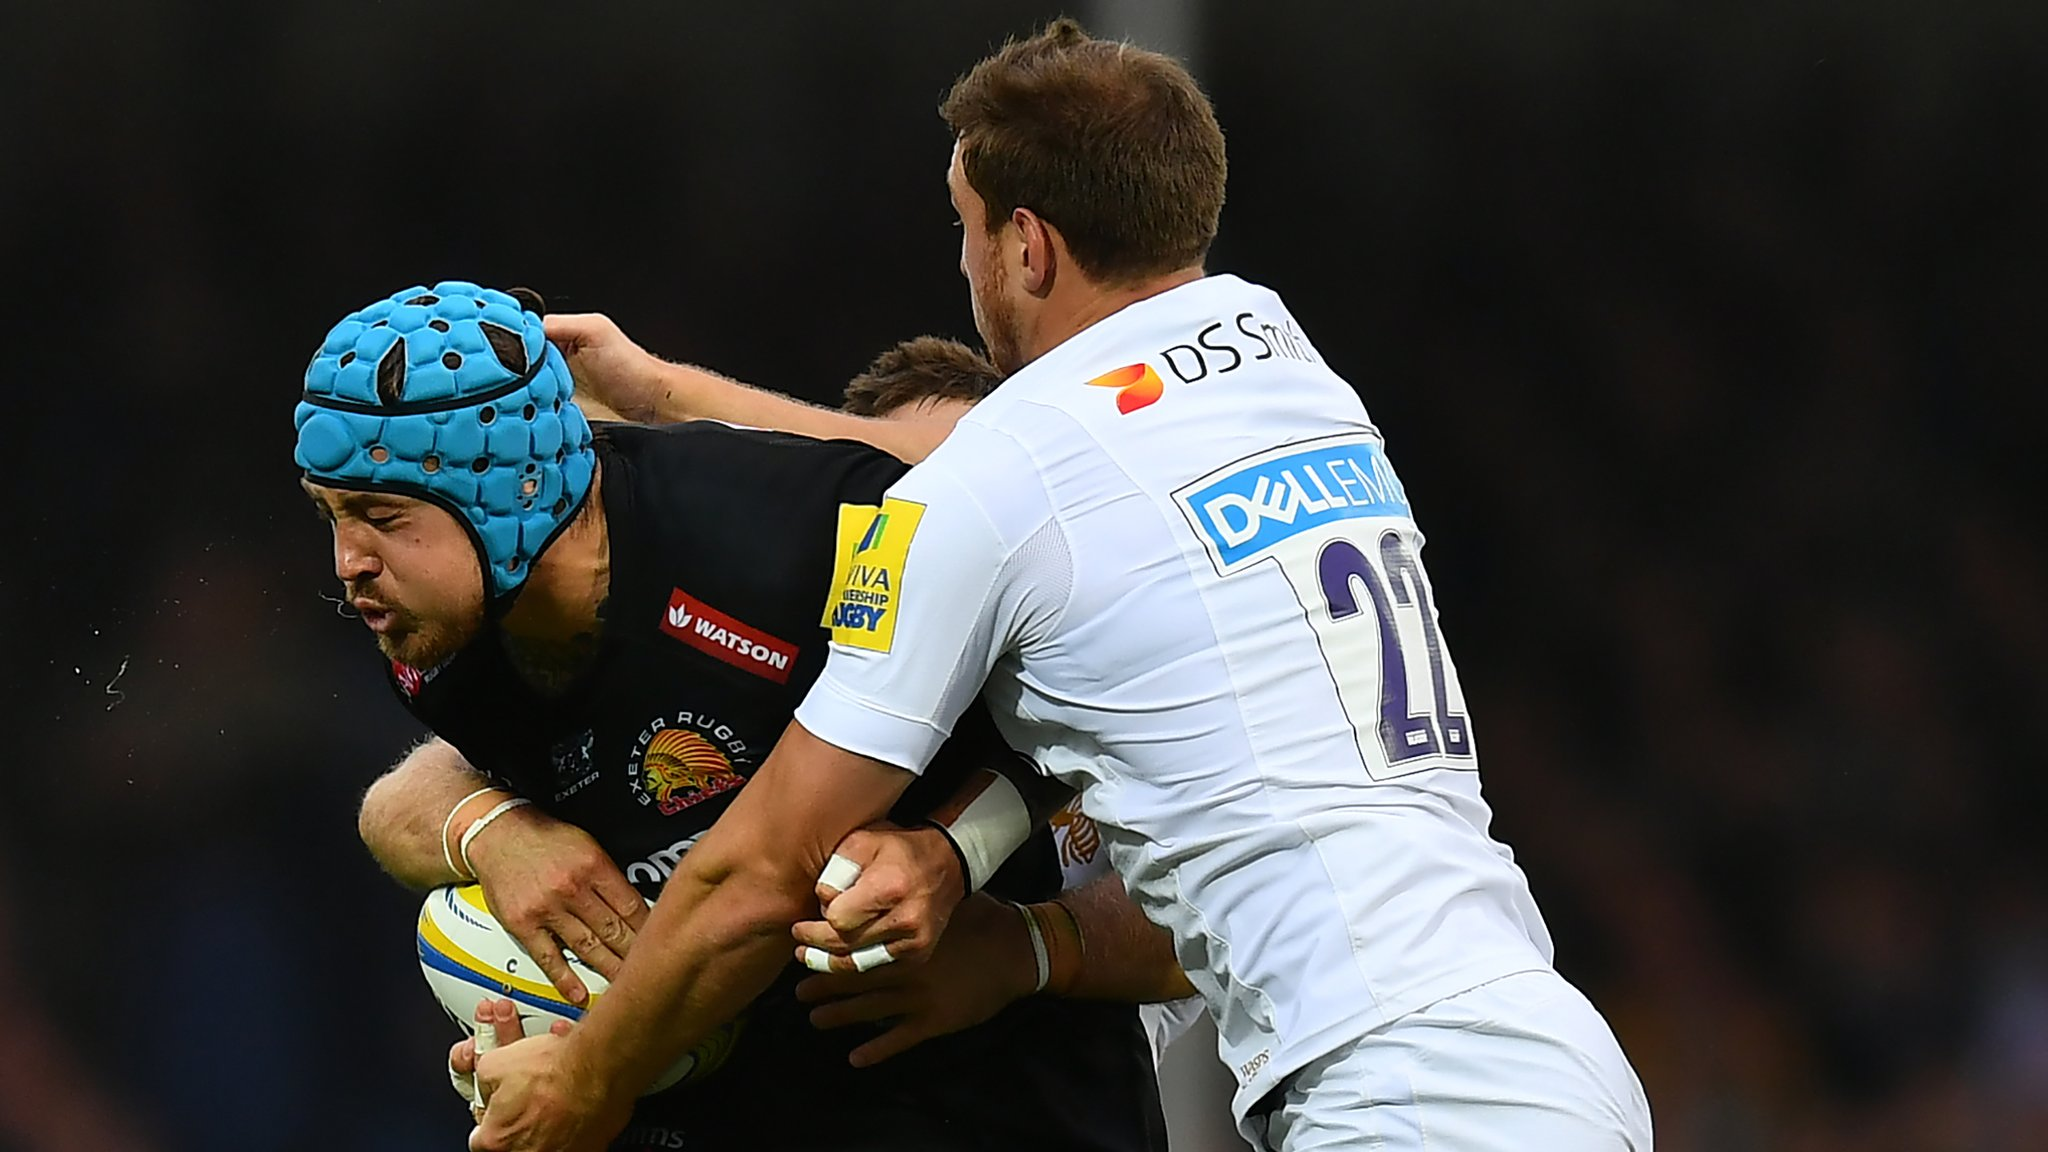 Exeter earn comfortable bonus-point win over Wasps